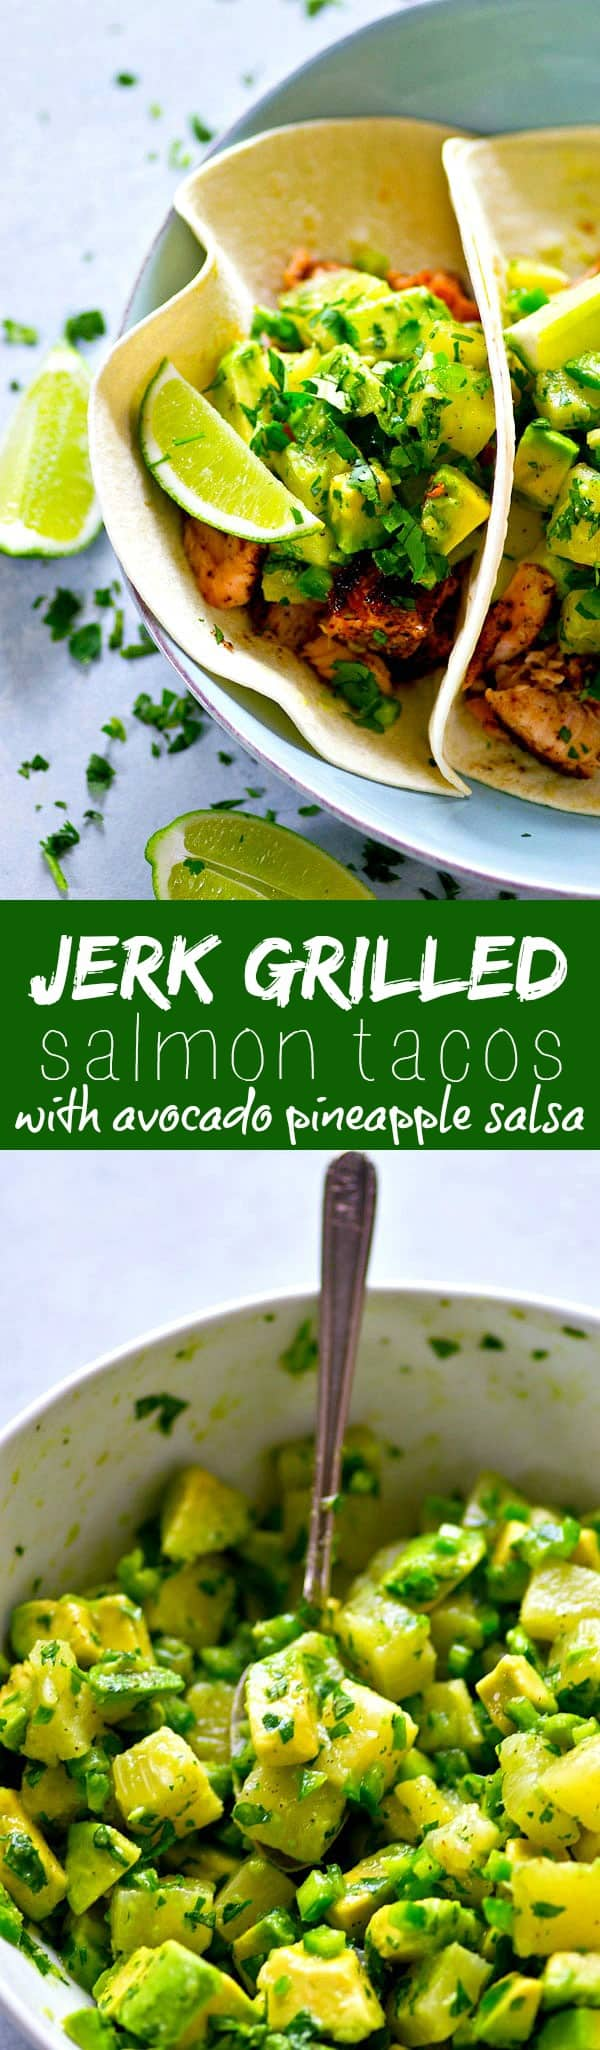 A smokey homemade jerk seasoning coats every inch of these jerk grilled salmon tacos that are heaped in soft flour tortillas and piled high with tangy avocado pineapple salsa!